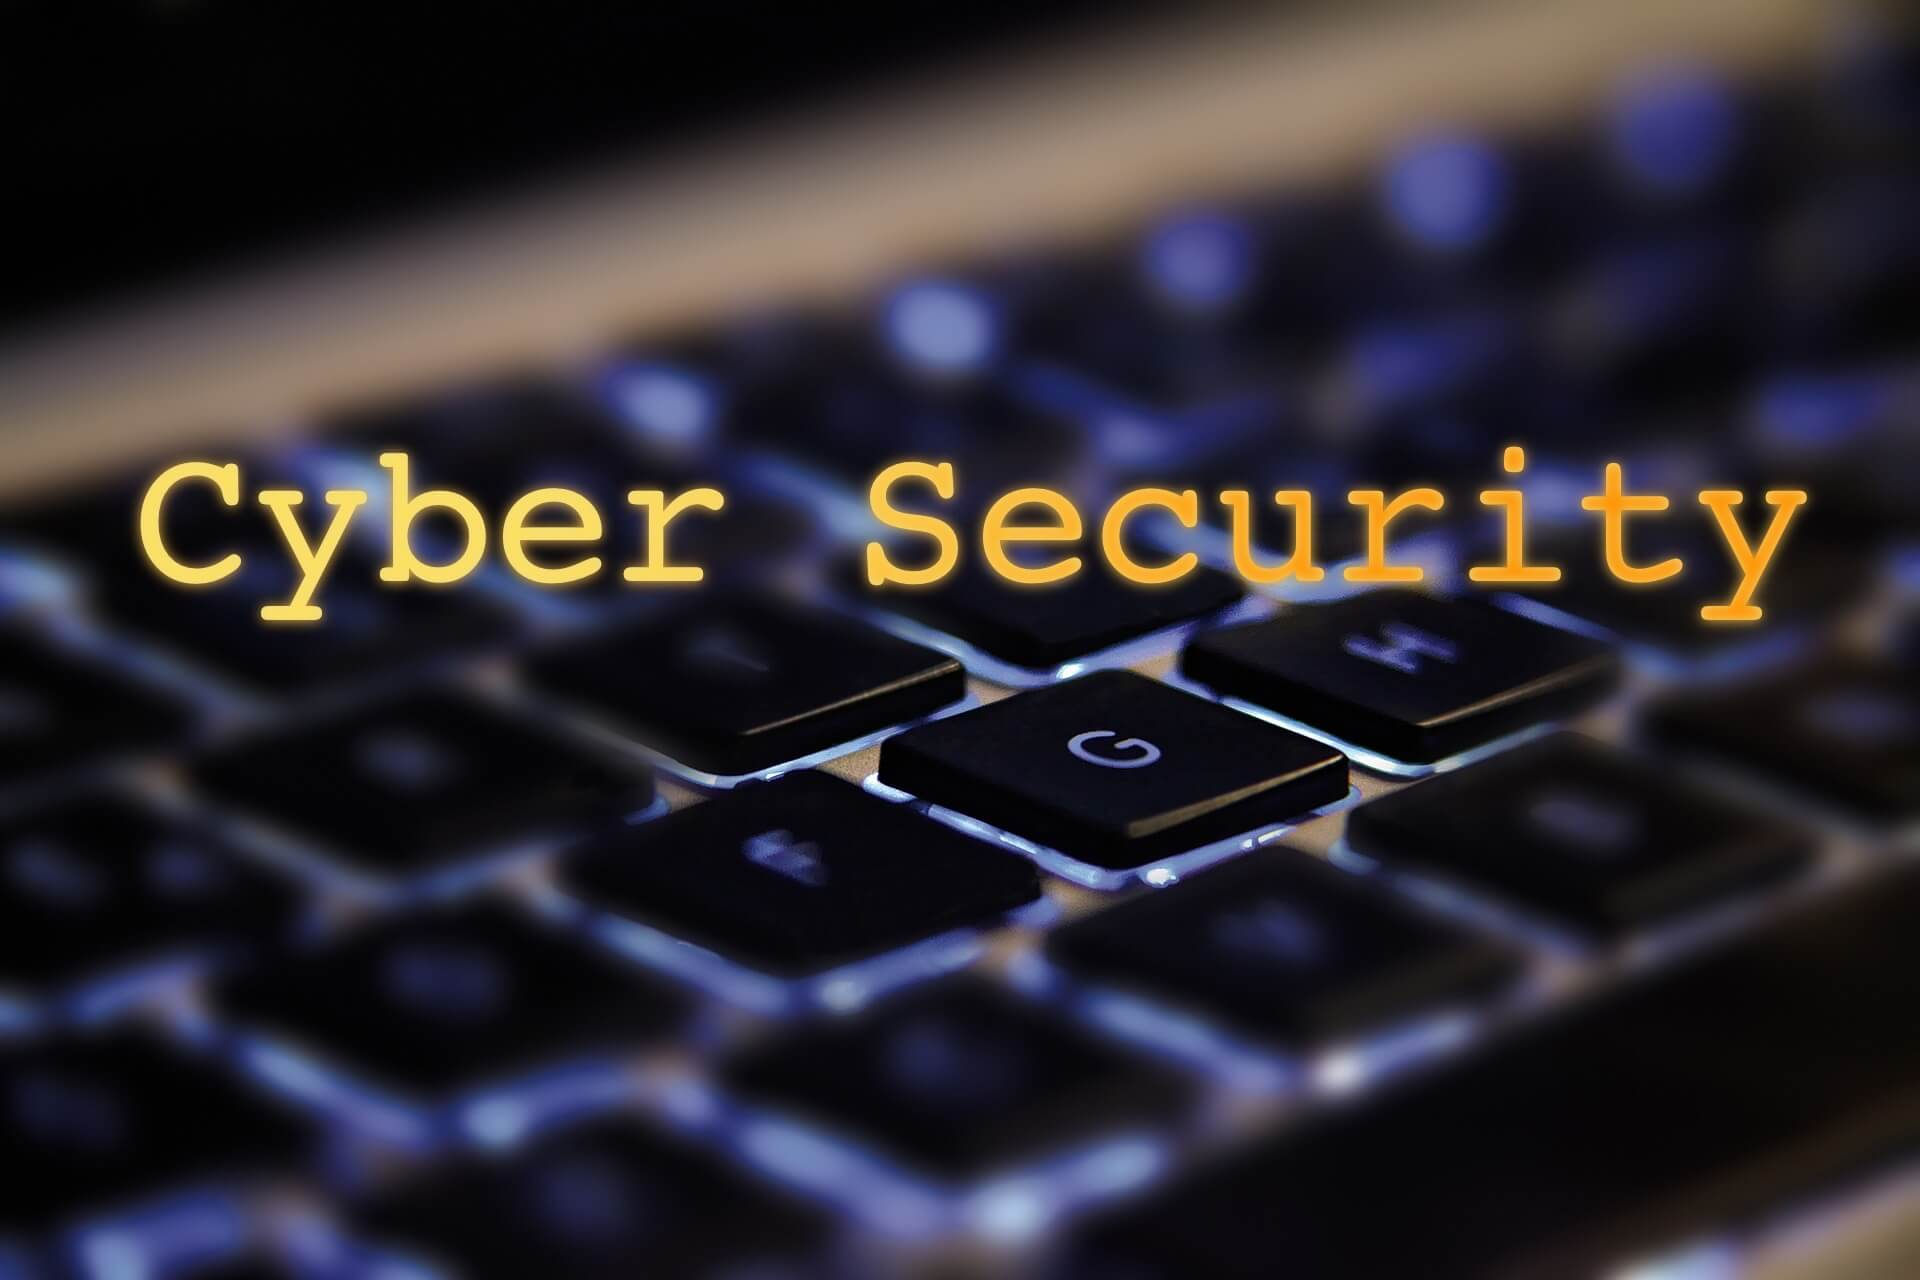 Cyber Security Newsletter